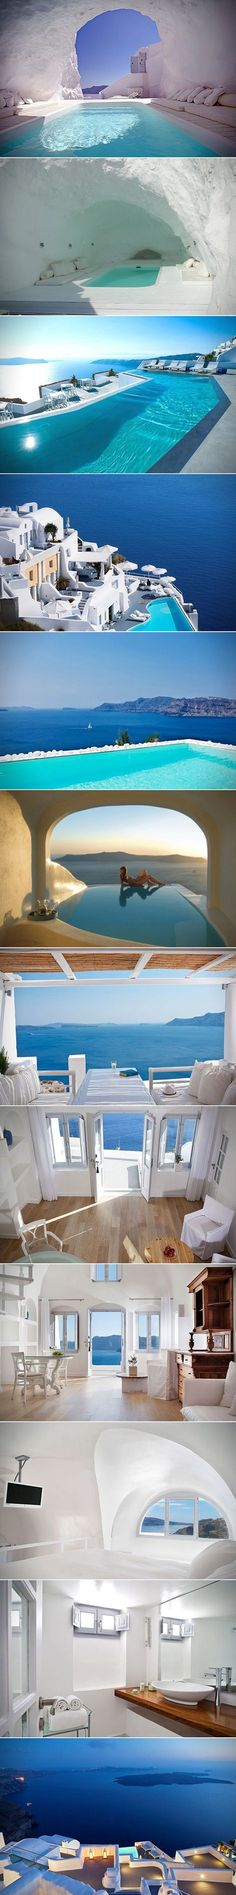 The Katikies Hotel on the beautiful island of Santorini sits atop a cliff overlooking the Santorini caldera basin, offering heart stopping views of the Aegean Sea. Even if it rains, we'd still be in awe of the cave pools and the immaculate white rooms wit Vacation Places, Vacation Destinations, Dream Vacations, Vacation Spots, Places To Travel, Beautiful Islands, Beautiful Places, Oh The Places You'll Go, Places To Visit